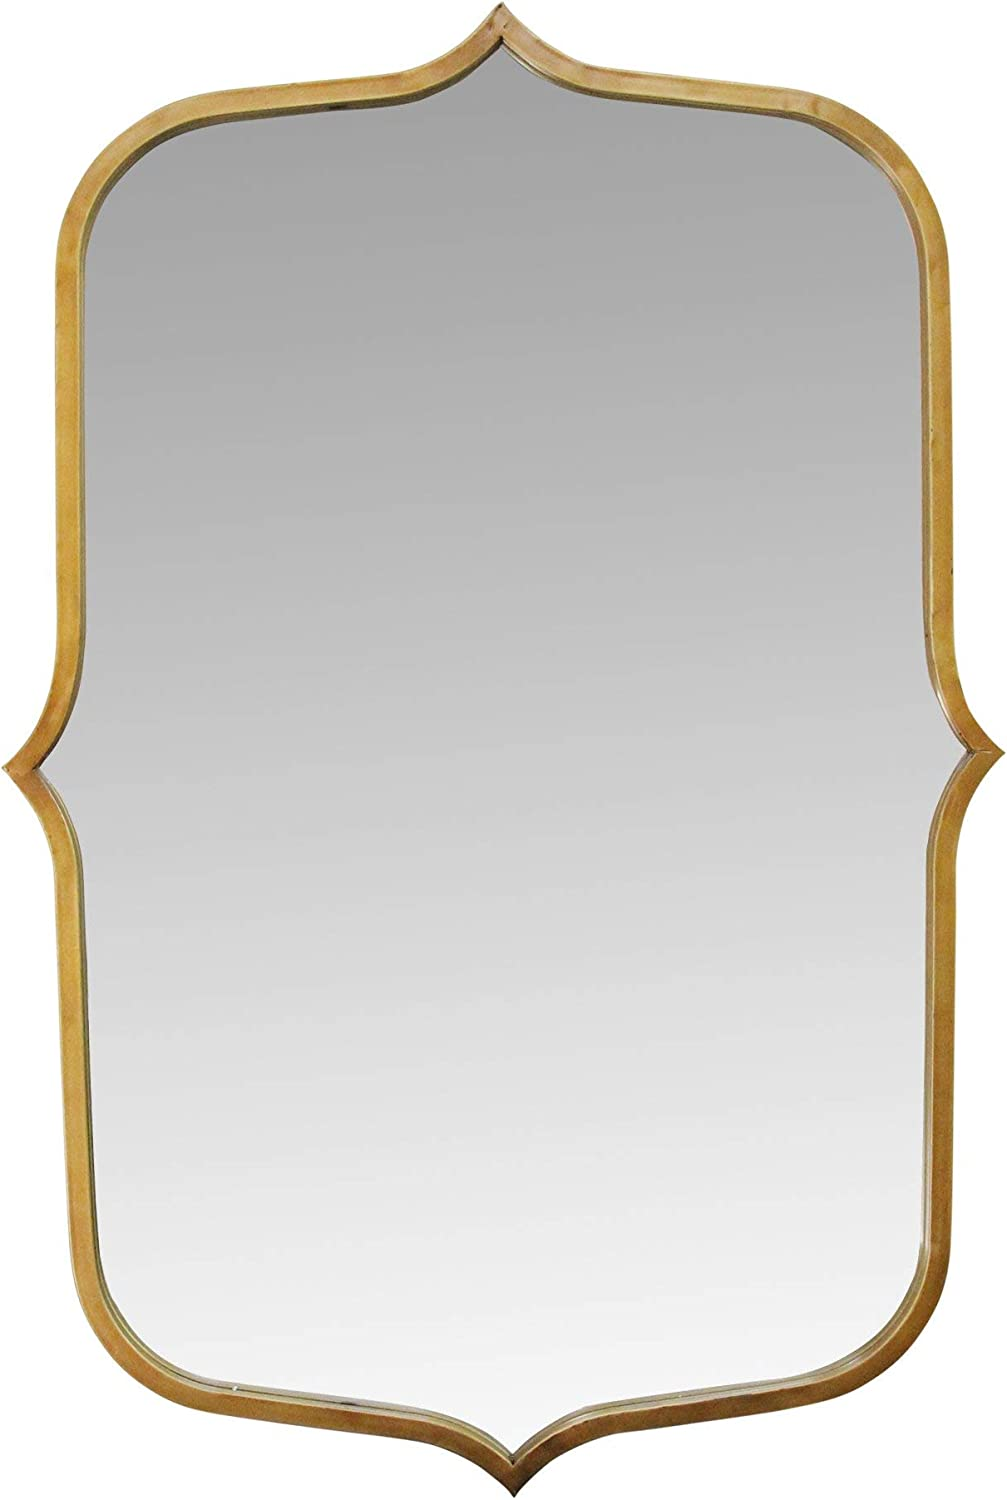 "Stratton Home Décor Stratton Home Decor 36"" Hillary Metal Mirror, Antique Gold"